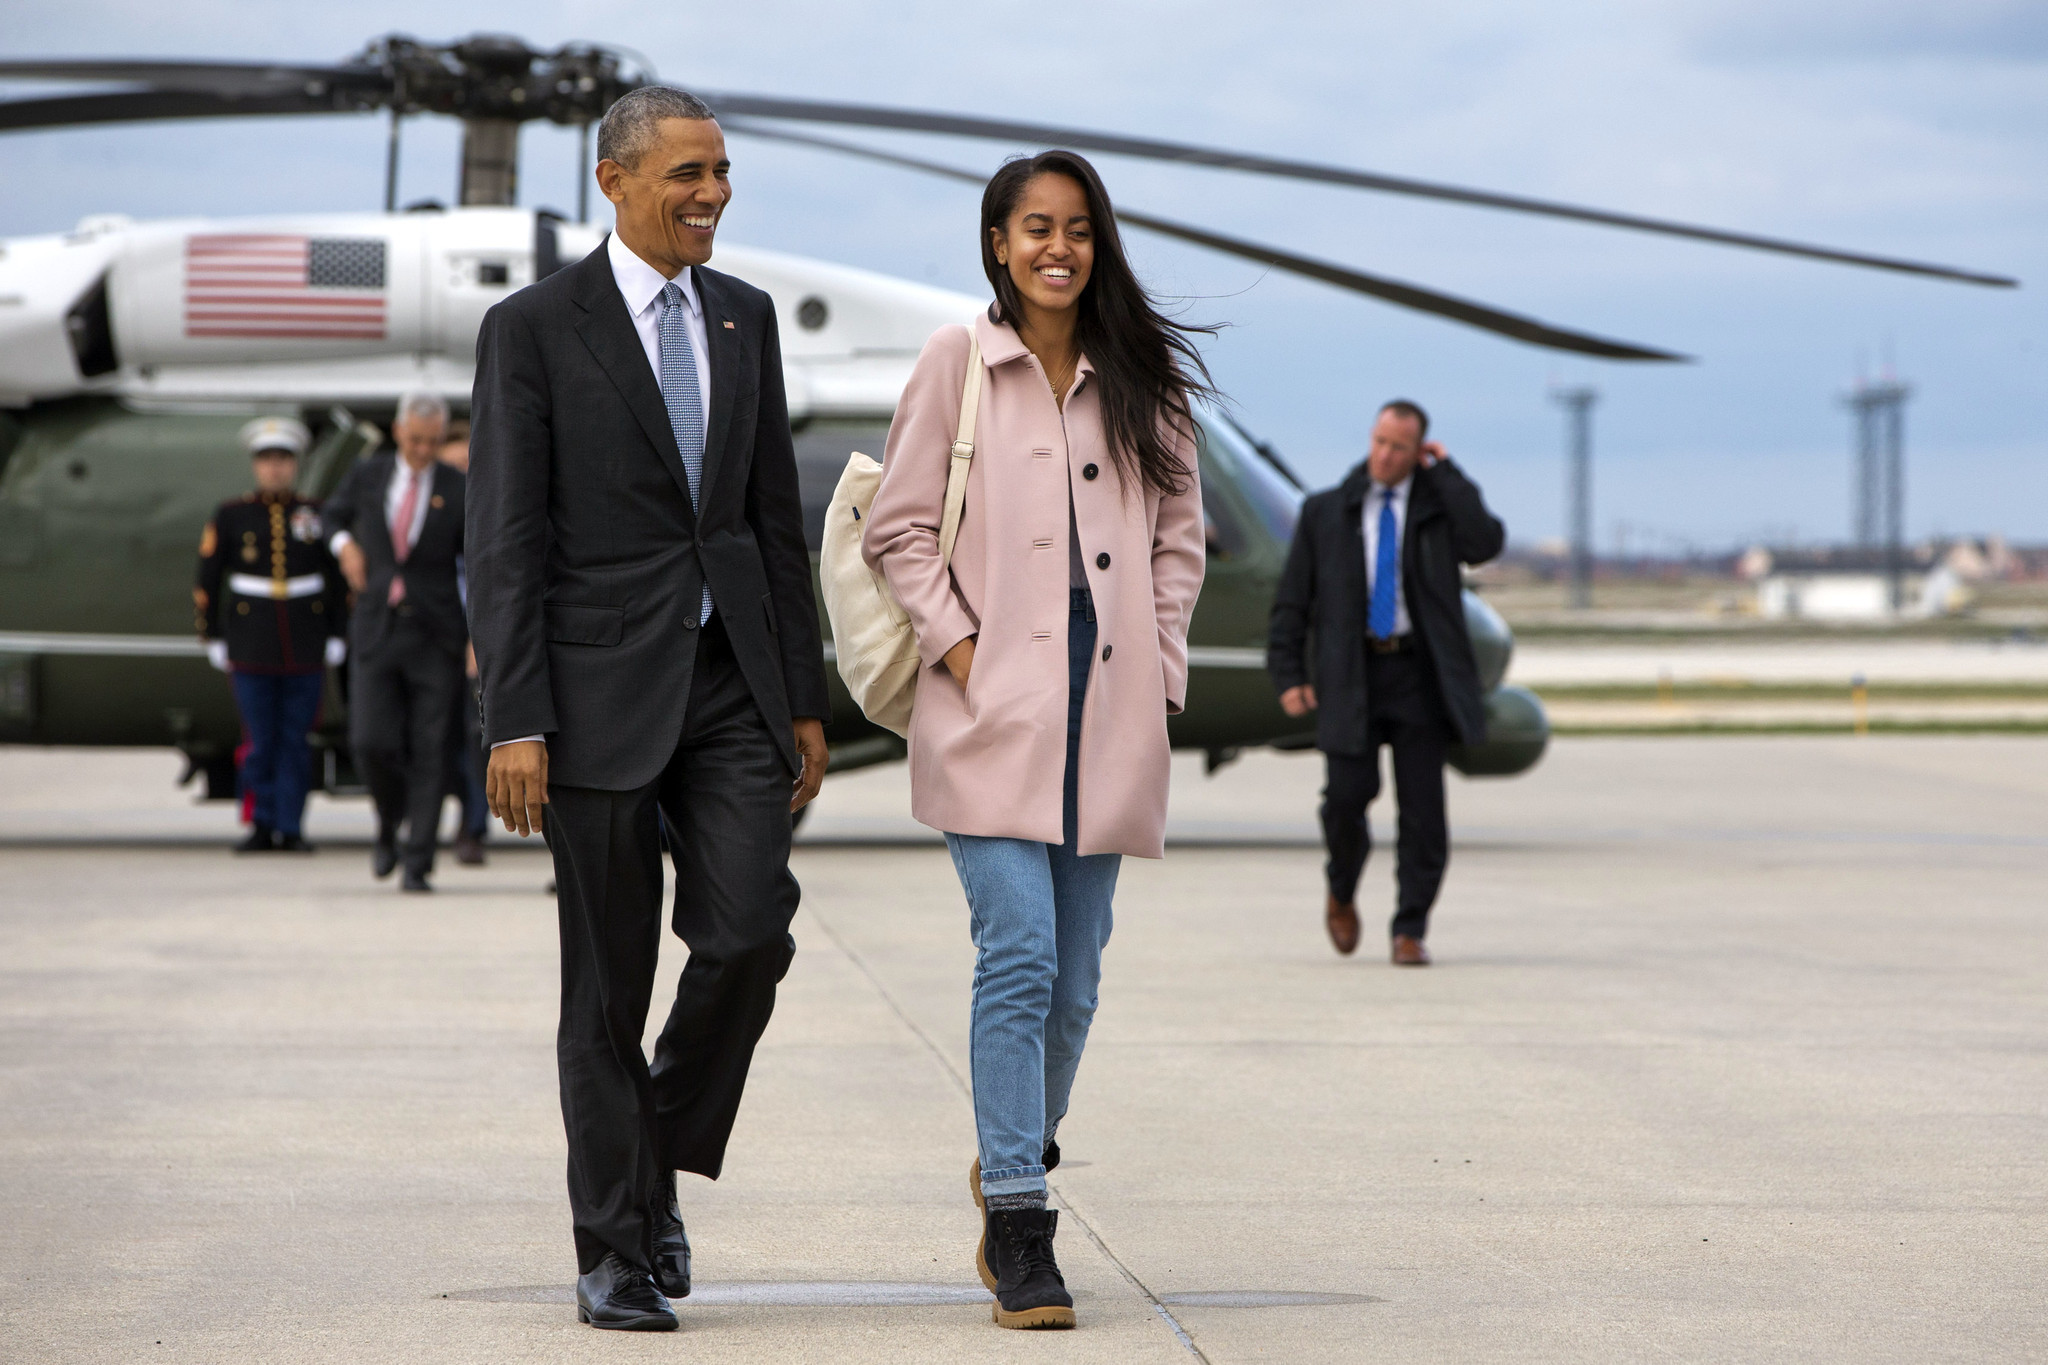 Malia Obama's gap year about to end as she goes to Harvard